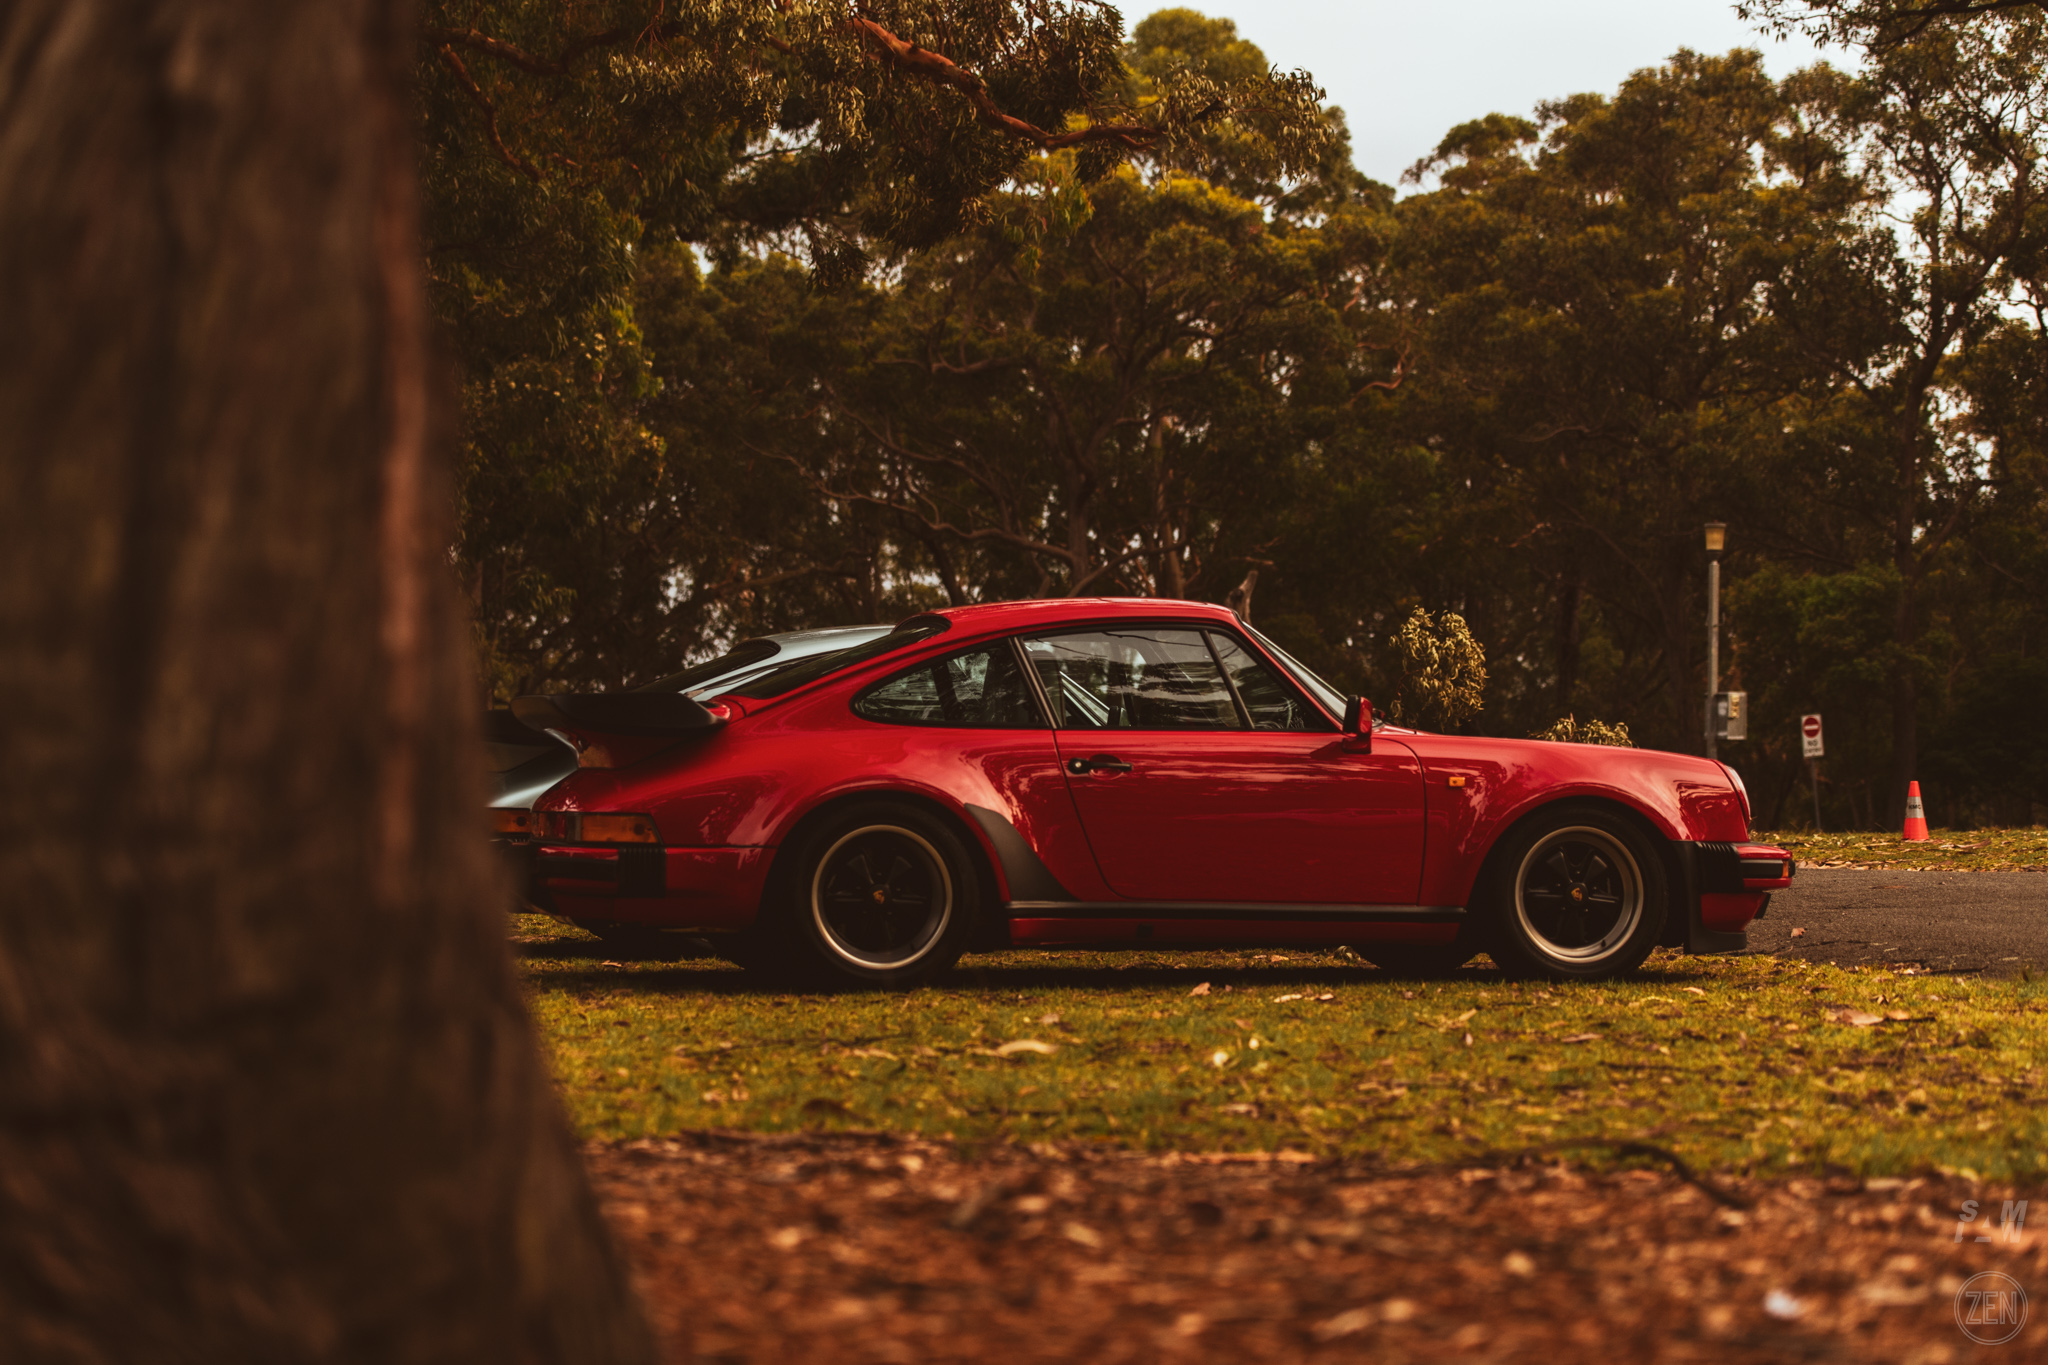 2019-12-08 - Porsches & Coffee 003